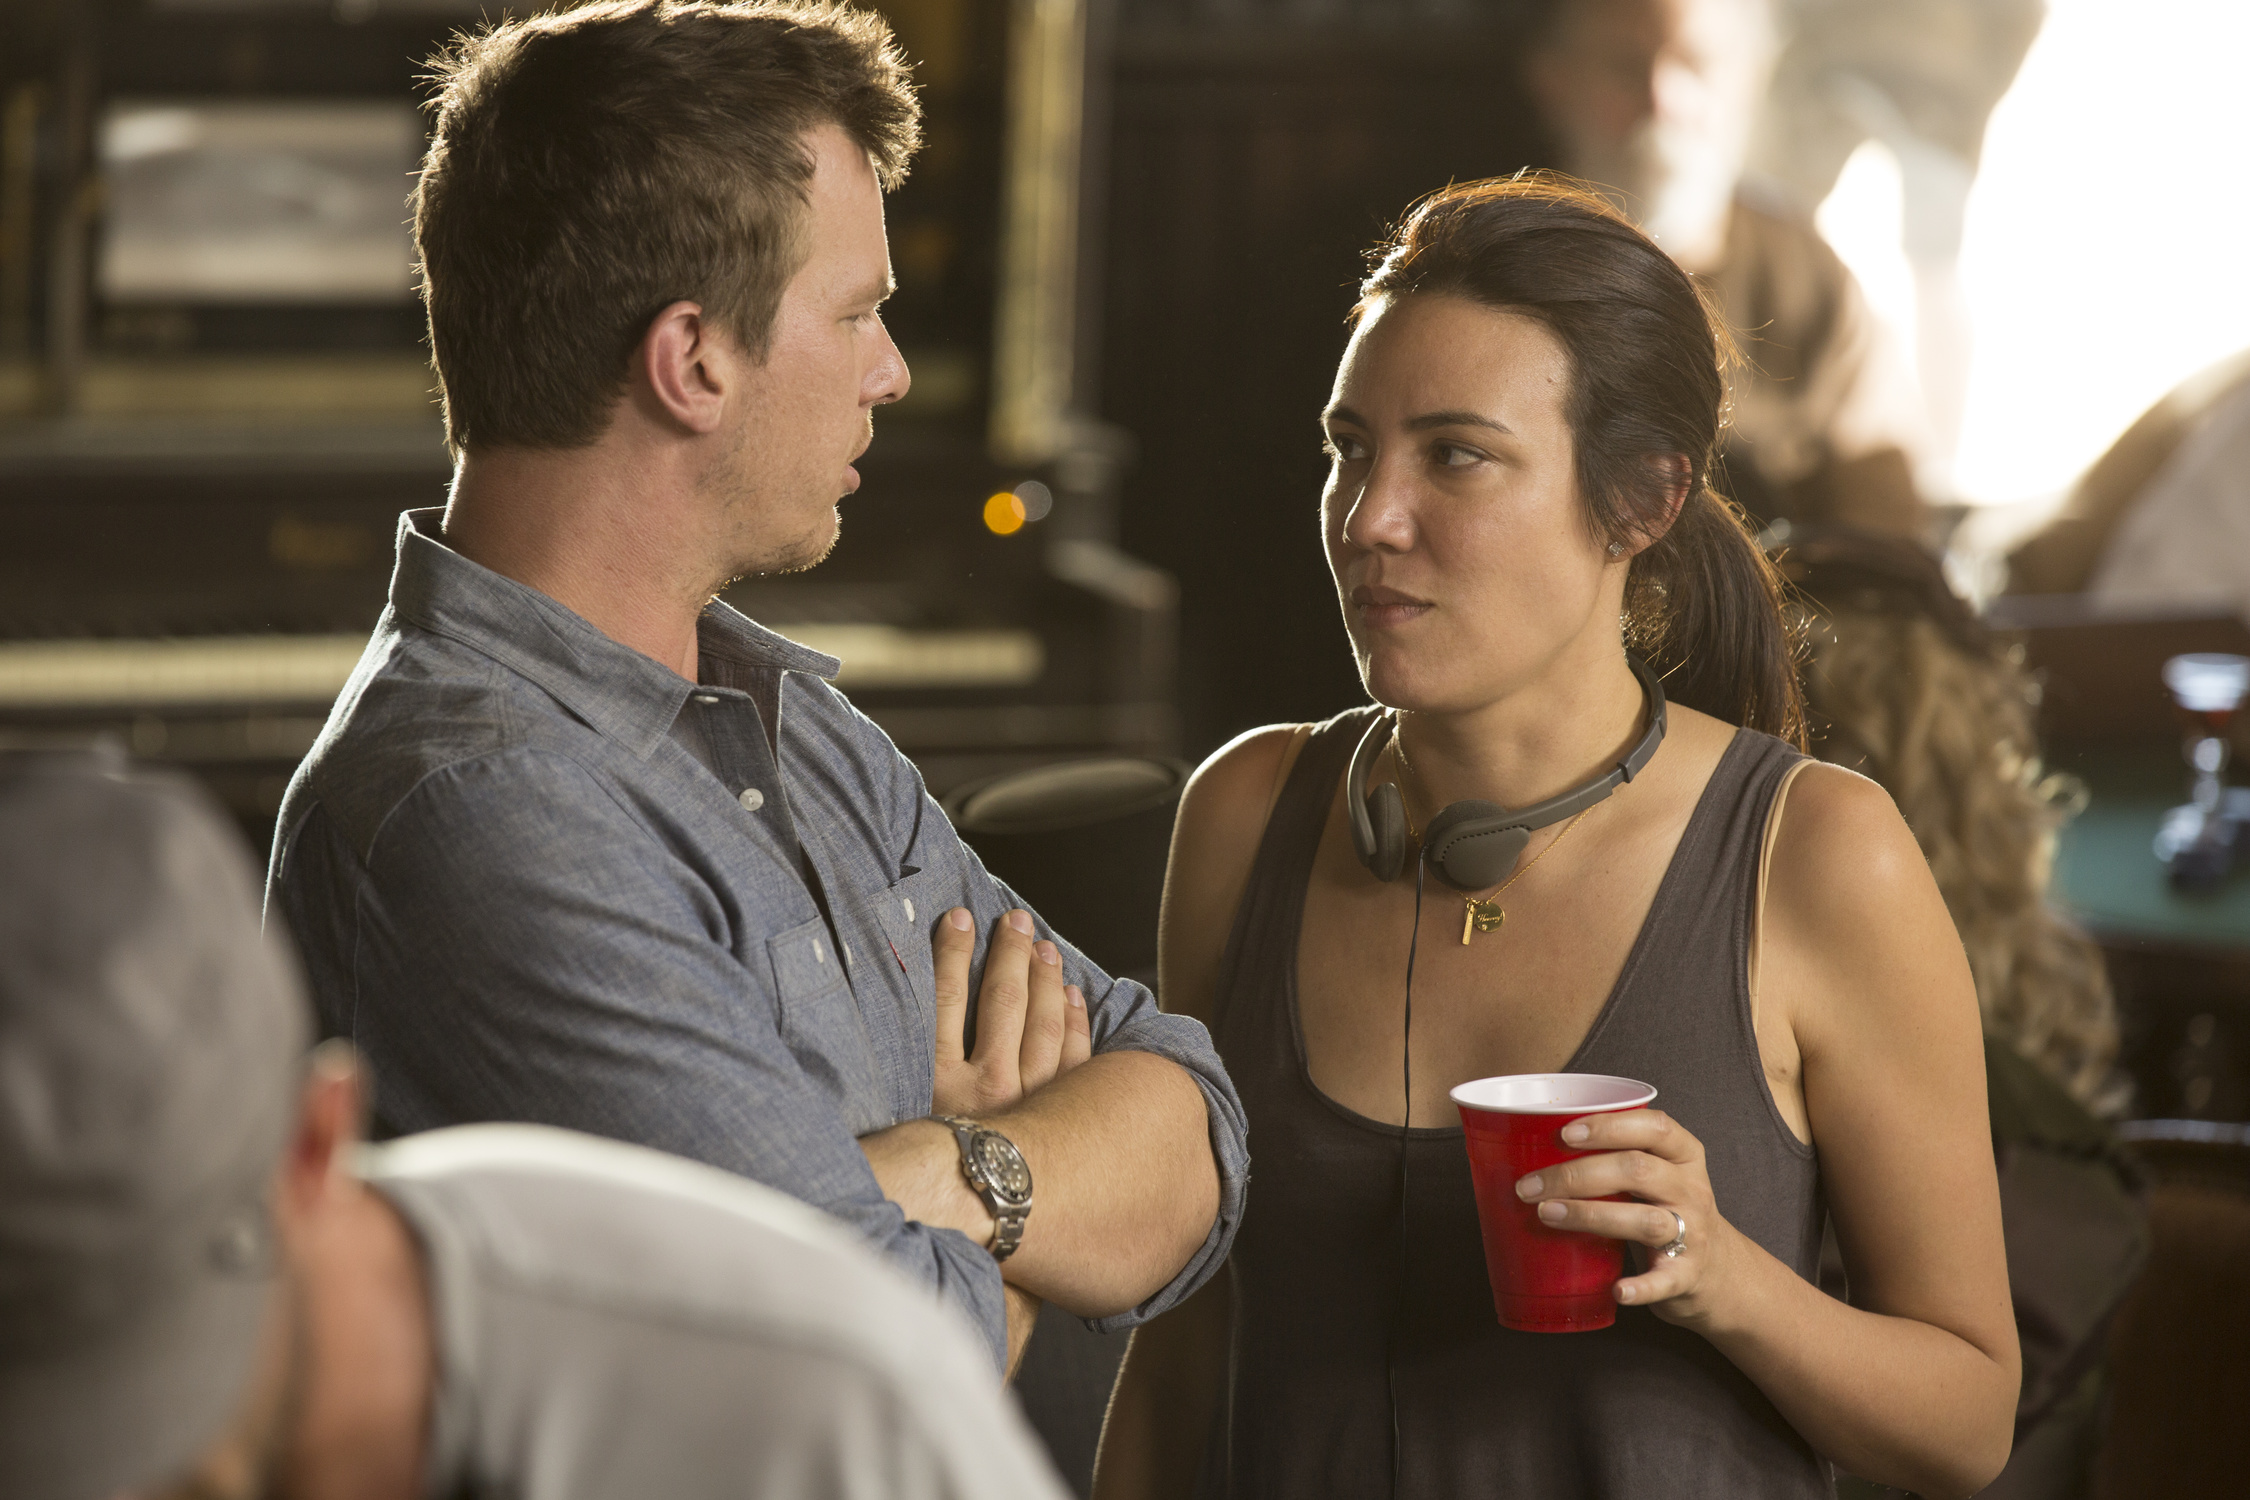 Series co-creators Jonathan Nolan and Lisa Joy